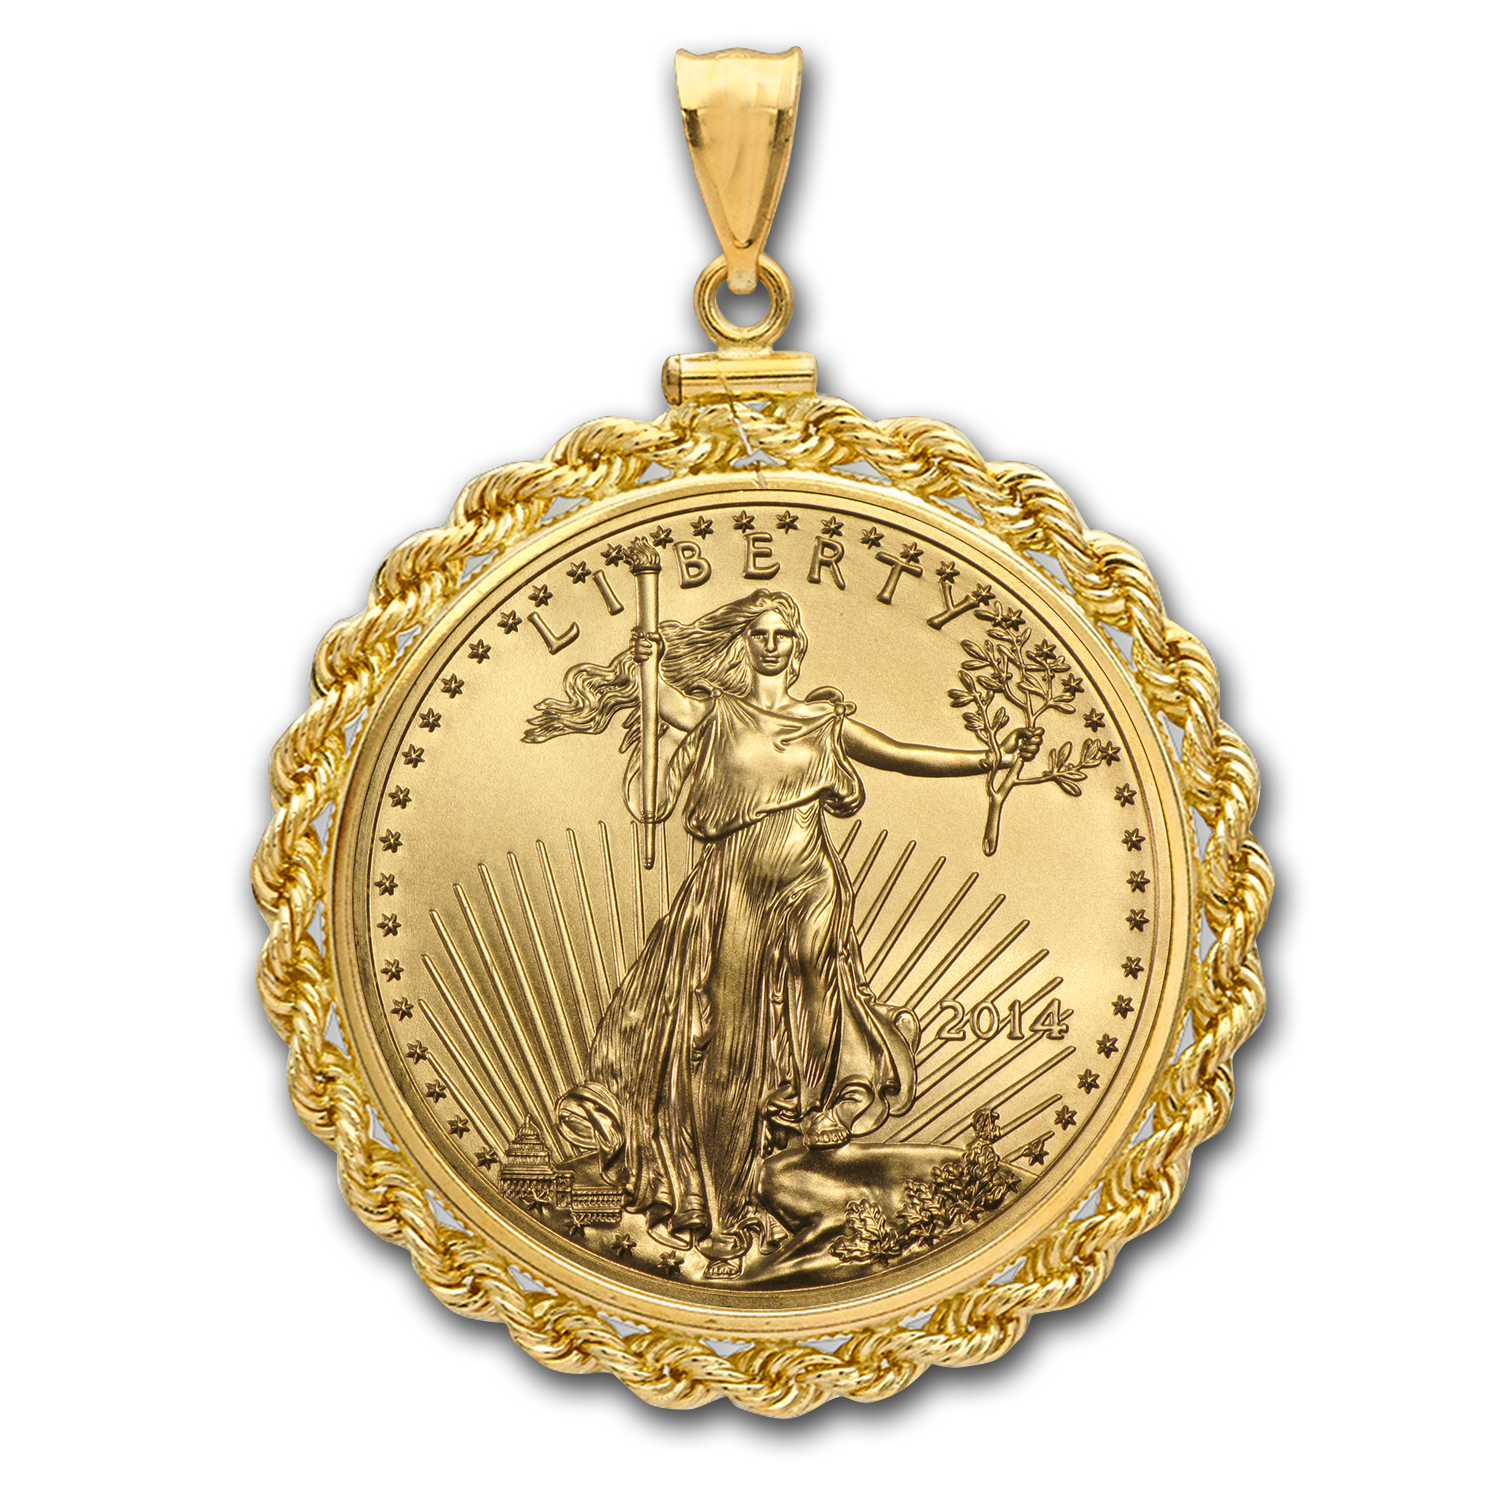 2014 1 oz Gold Eagle Pendant (Rope-ScrewTop Bezel)